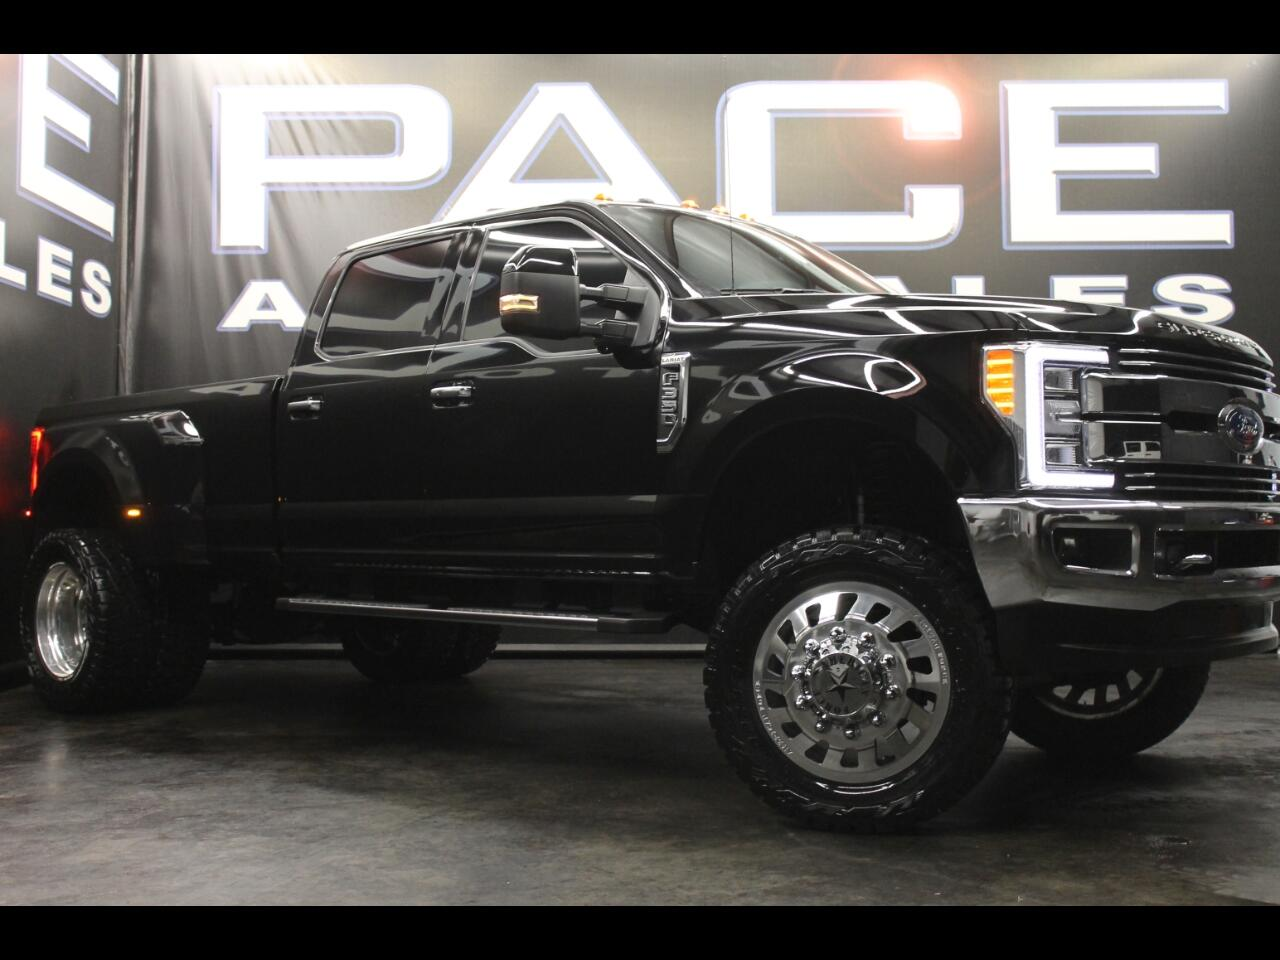 2017 Ford Super Duty F-350 DRW Lariat 4WD Crew Cab Lifted Custom